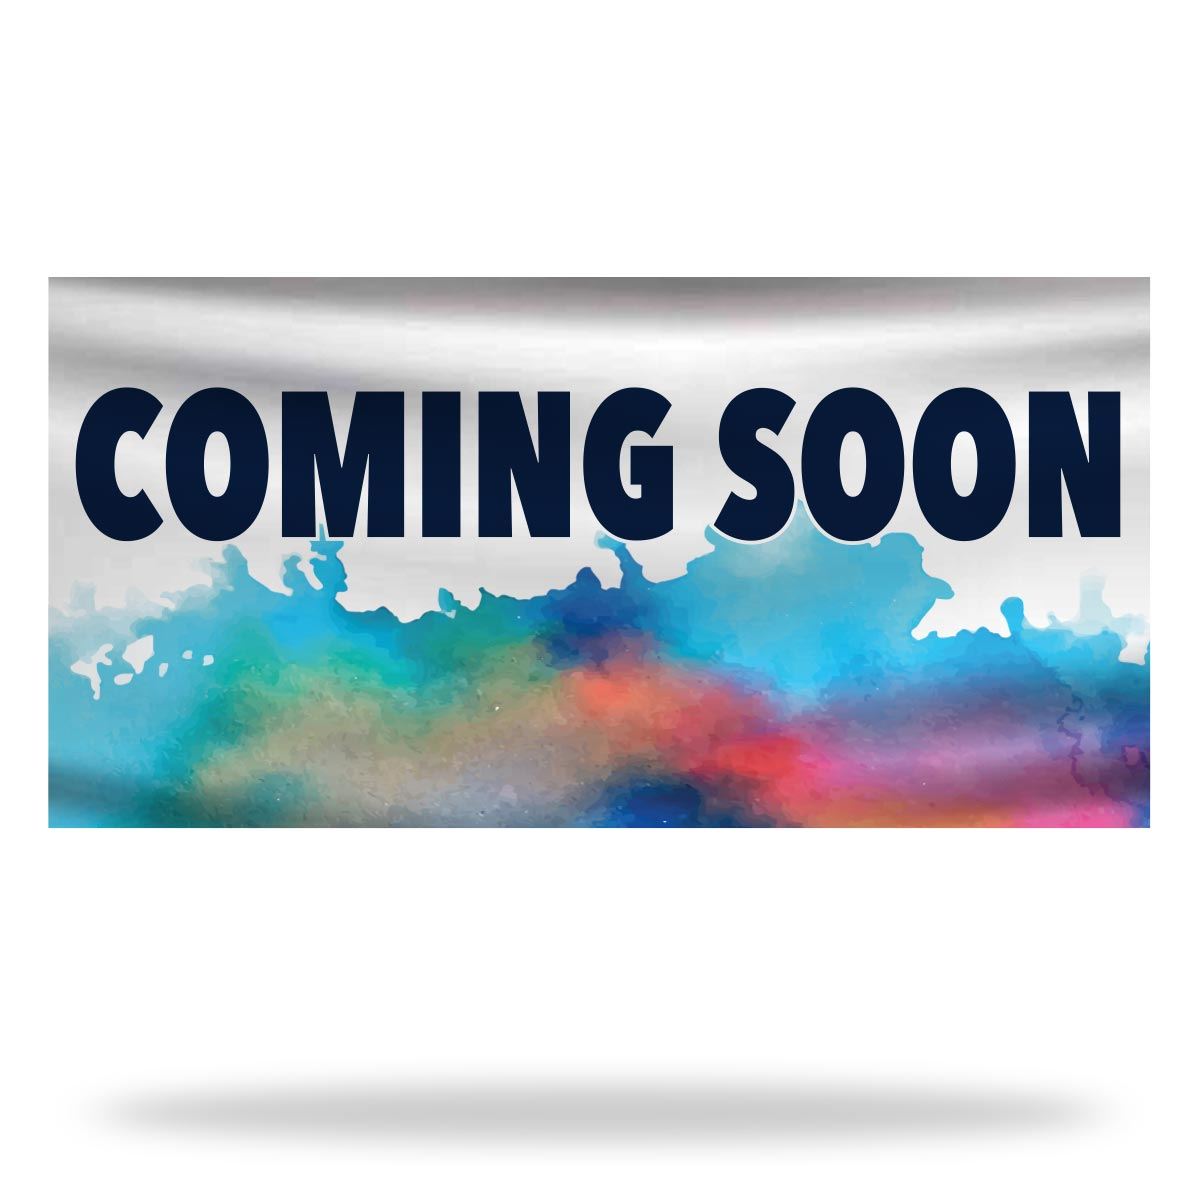 Coming Soon Flags & Banners Design 03